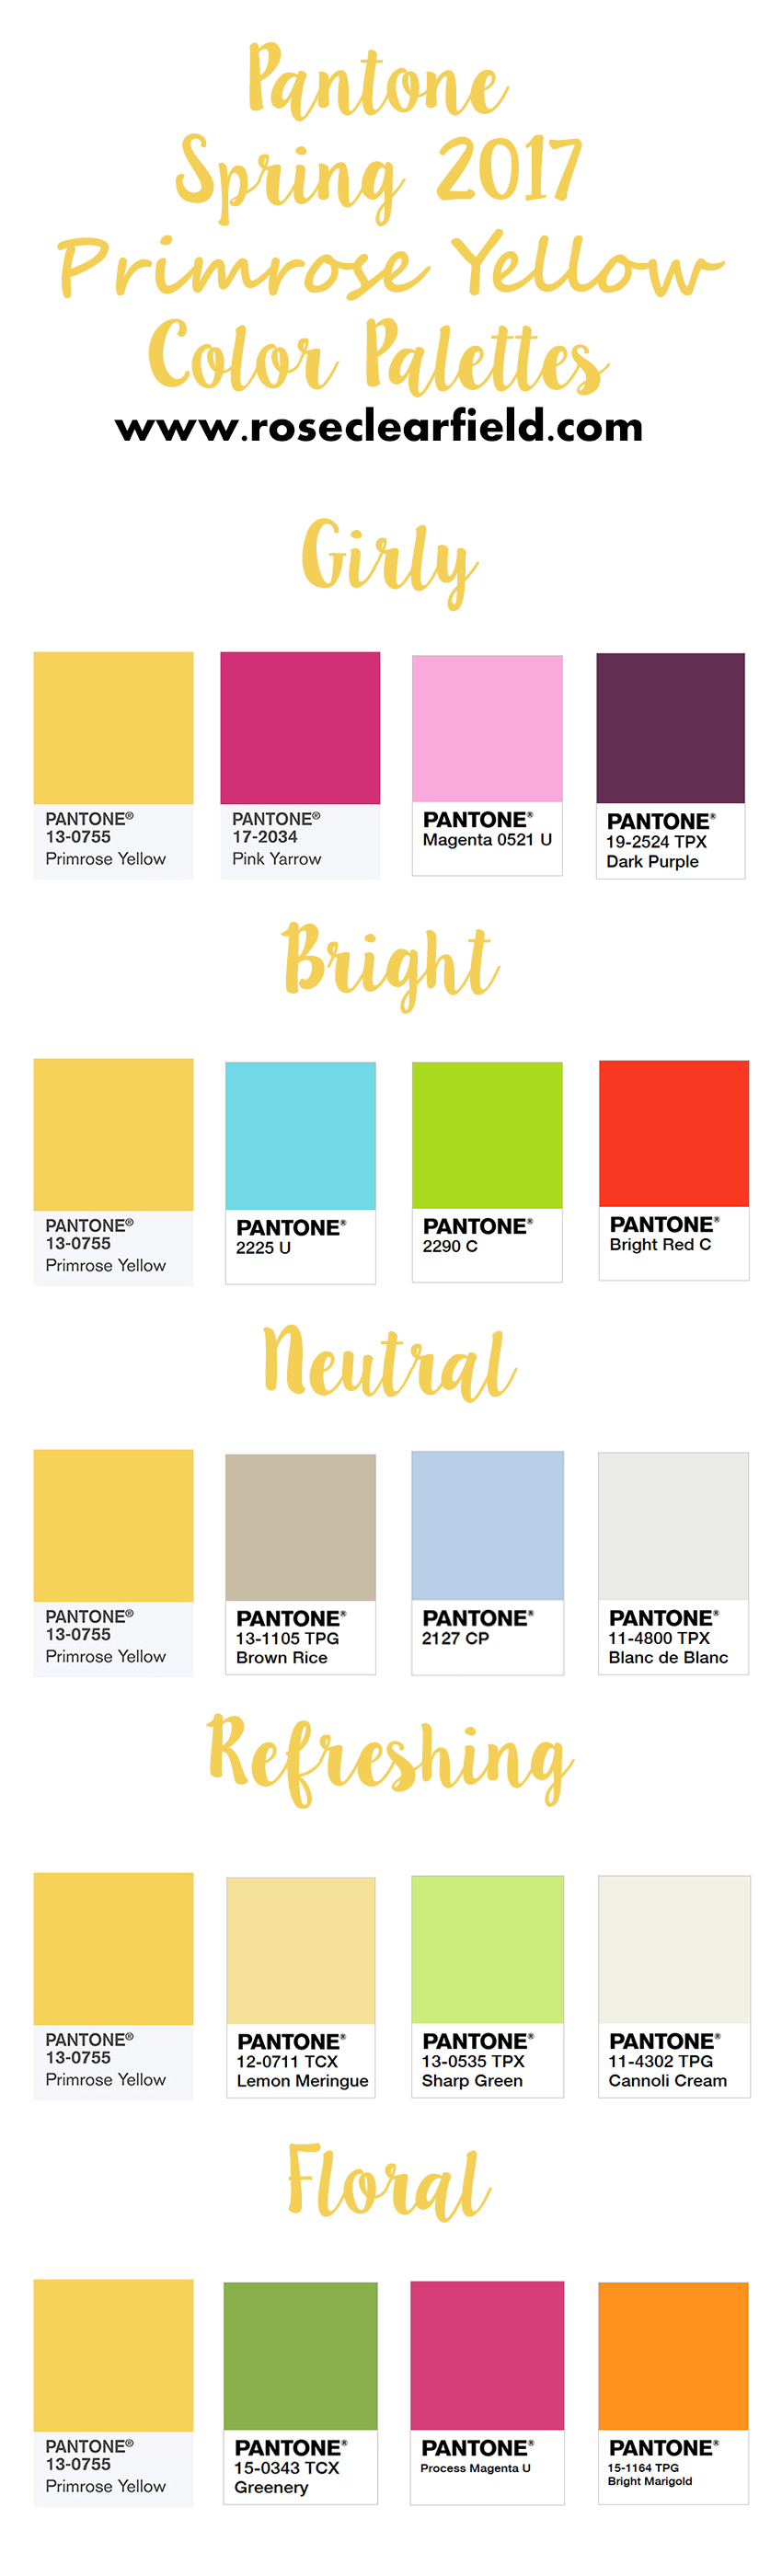 Pantone Spring 2017 Primrose Yellow Color Palettes | https://www.roseclearfield.com